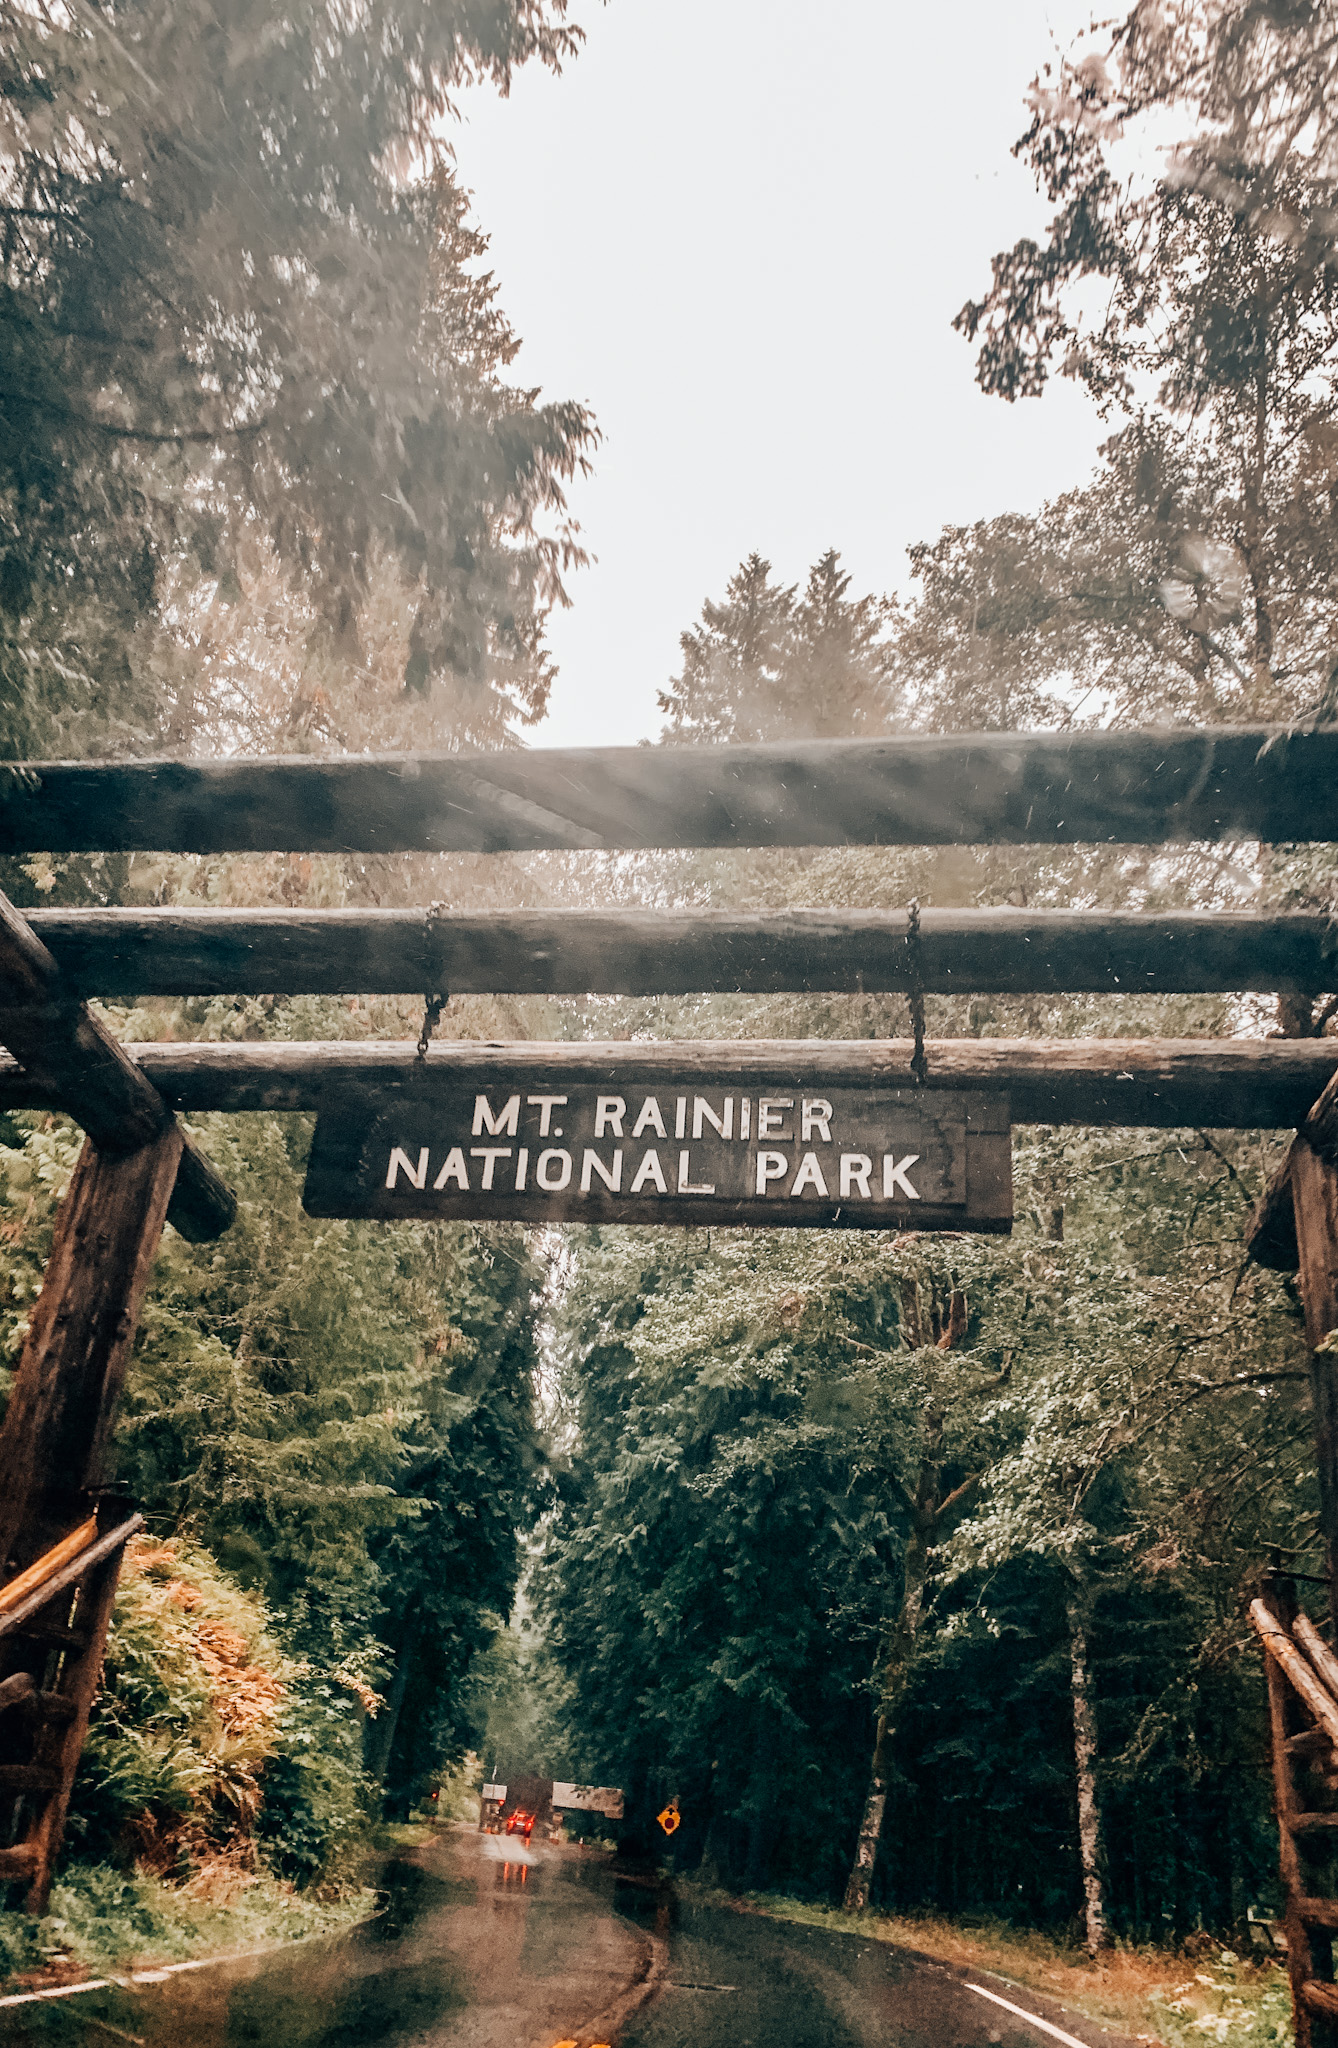 Entrance to Mt. Rainier National Park in the PNW